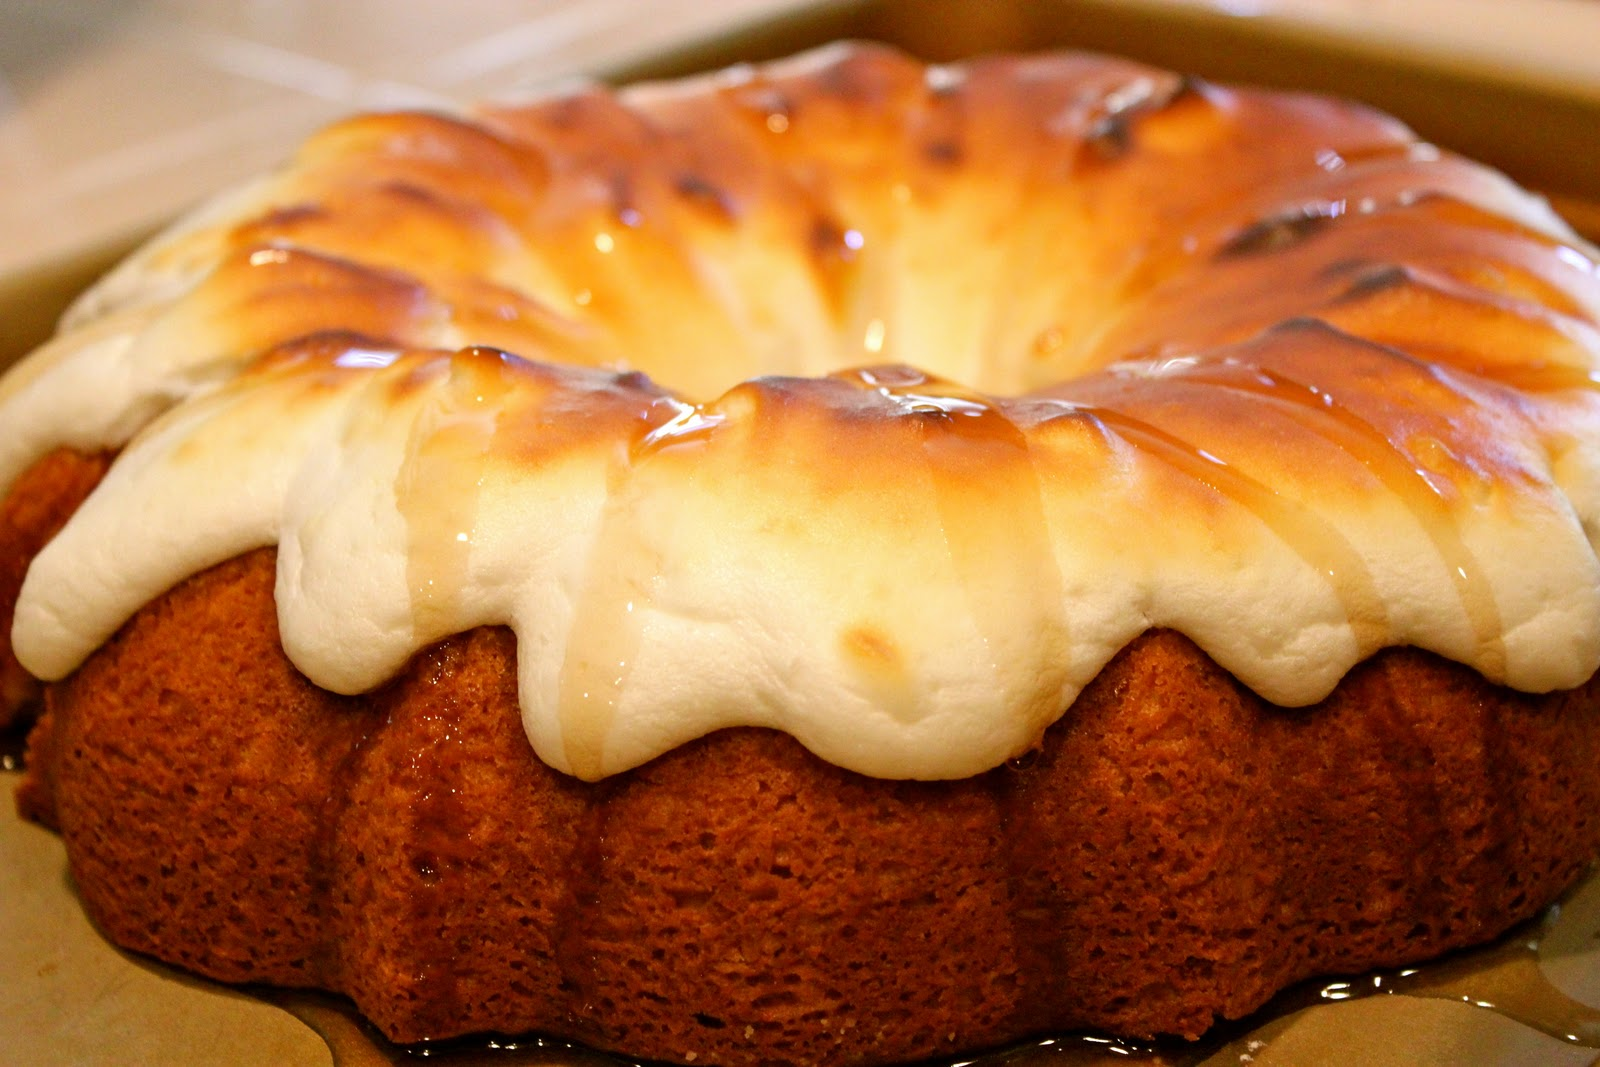 Harmony Household: Maple Bundt Cake with Meringue Topping